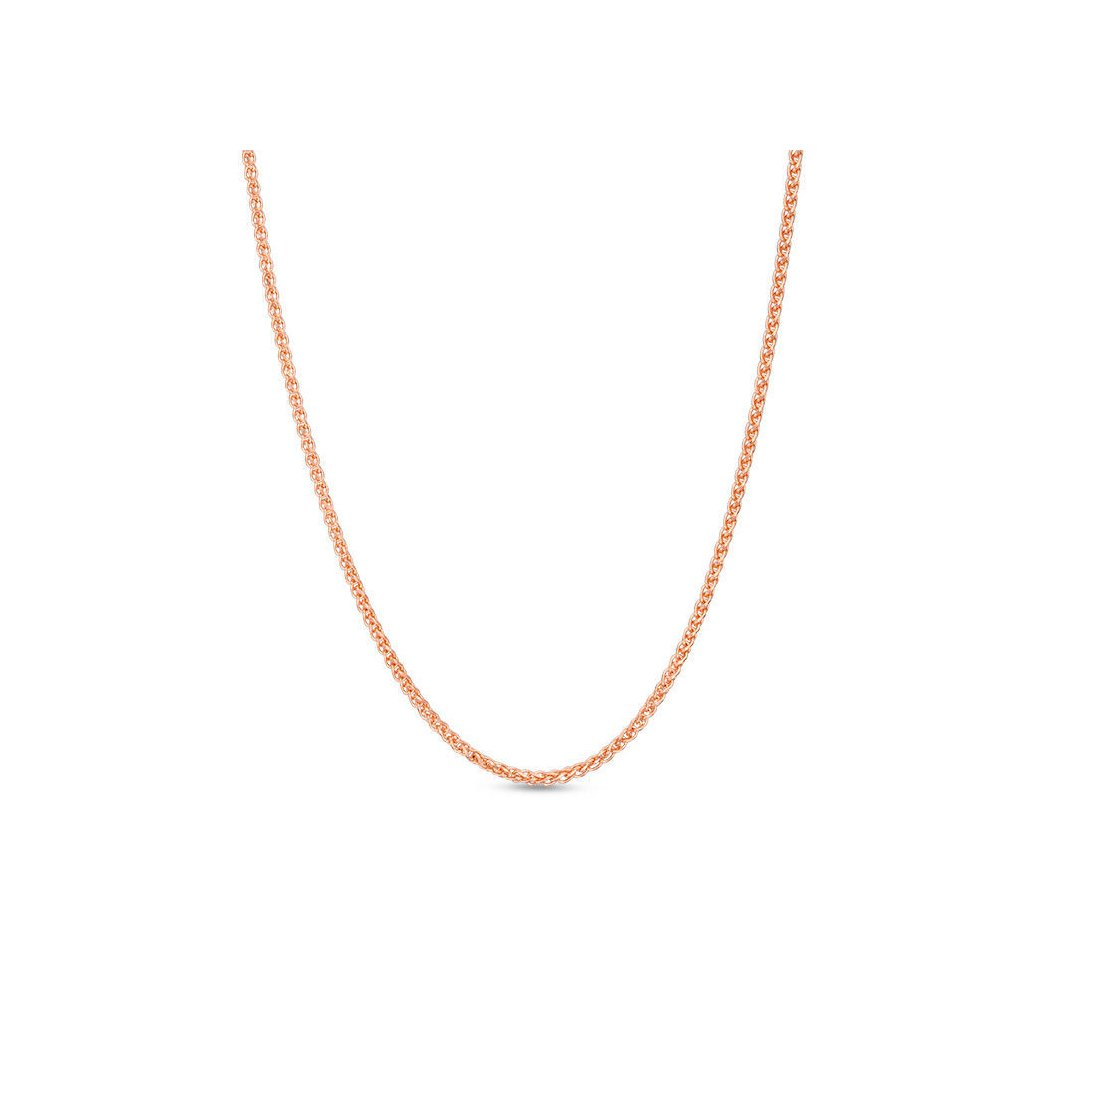 "1.9MM 045 Rose Gold Wheat/Spiga Chain .925 Sterling Silver Length ""7-24"" Inches"